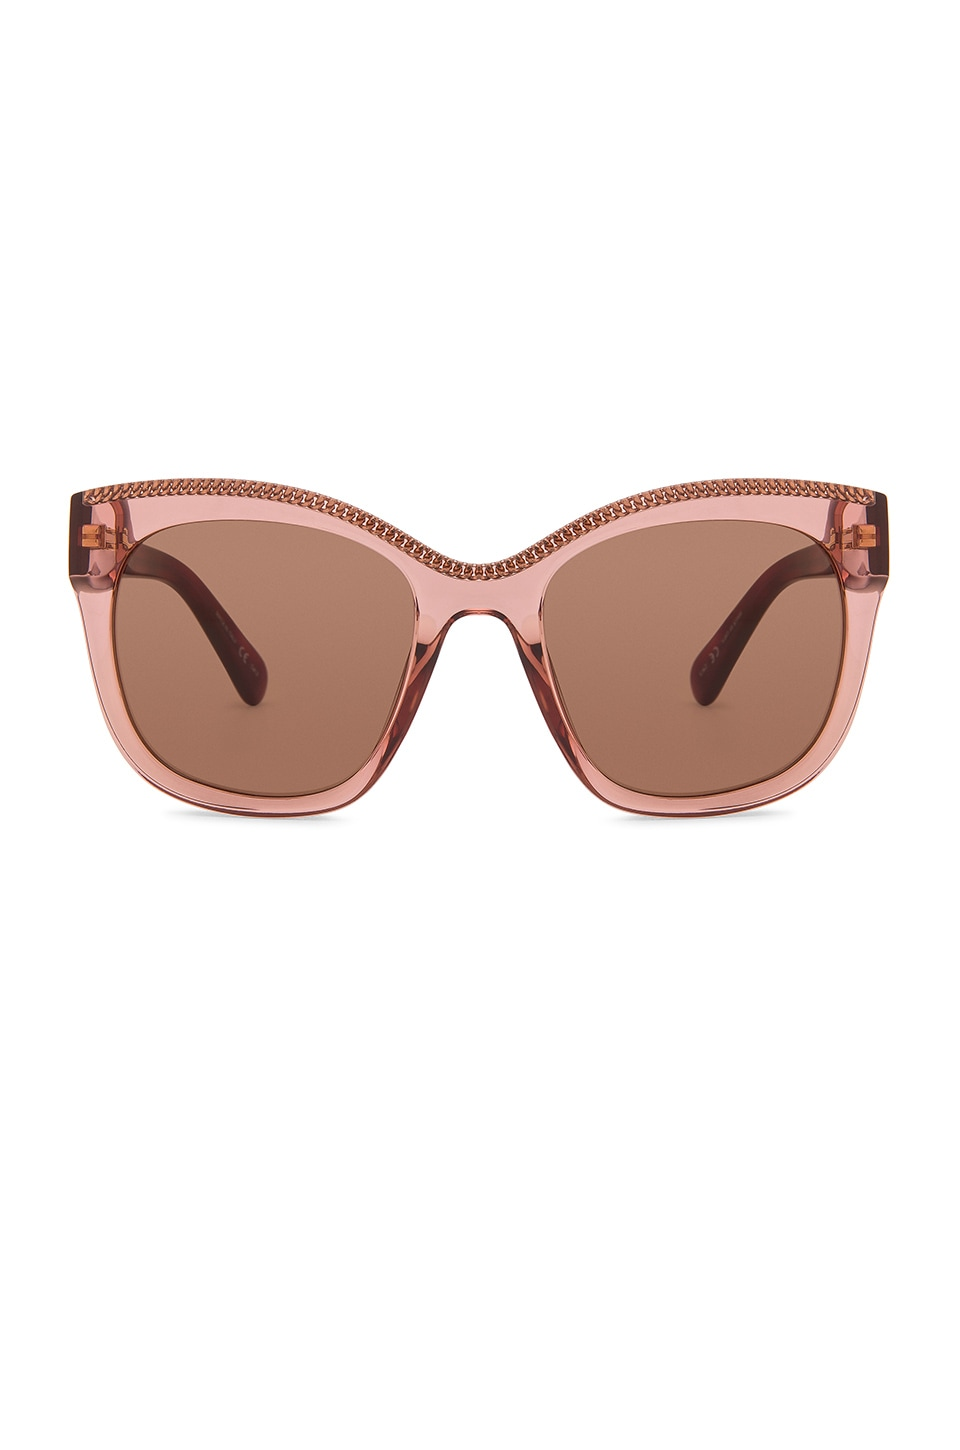 Stella McCartney LUNETTES DE SOLEIL FALABELLA CAT EYE